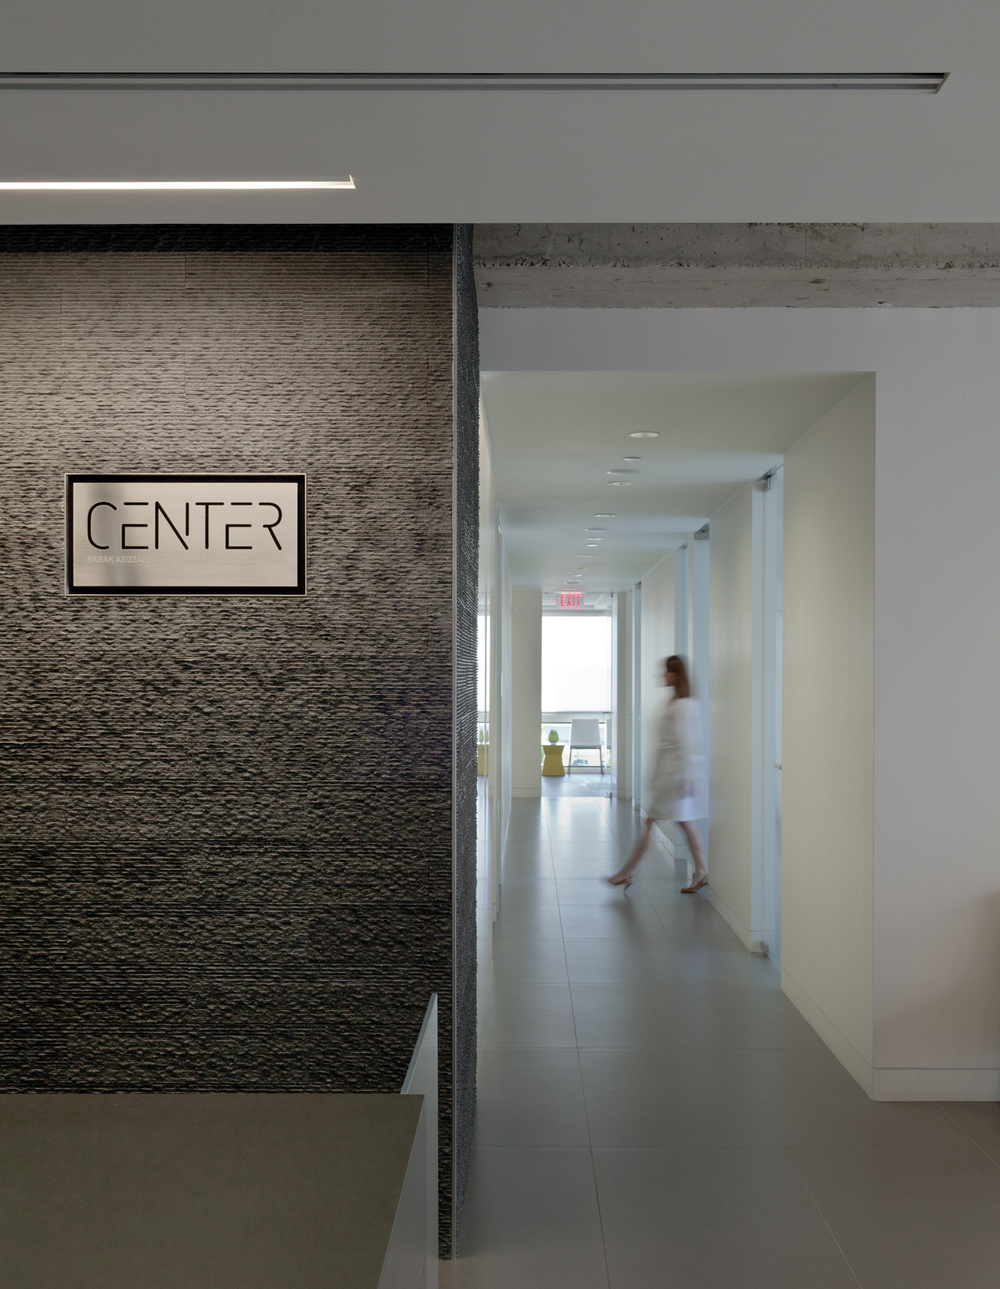 Design-Helm_CENTER_Interiors_Hall.jpg